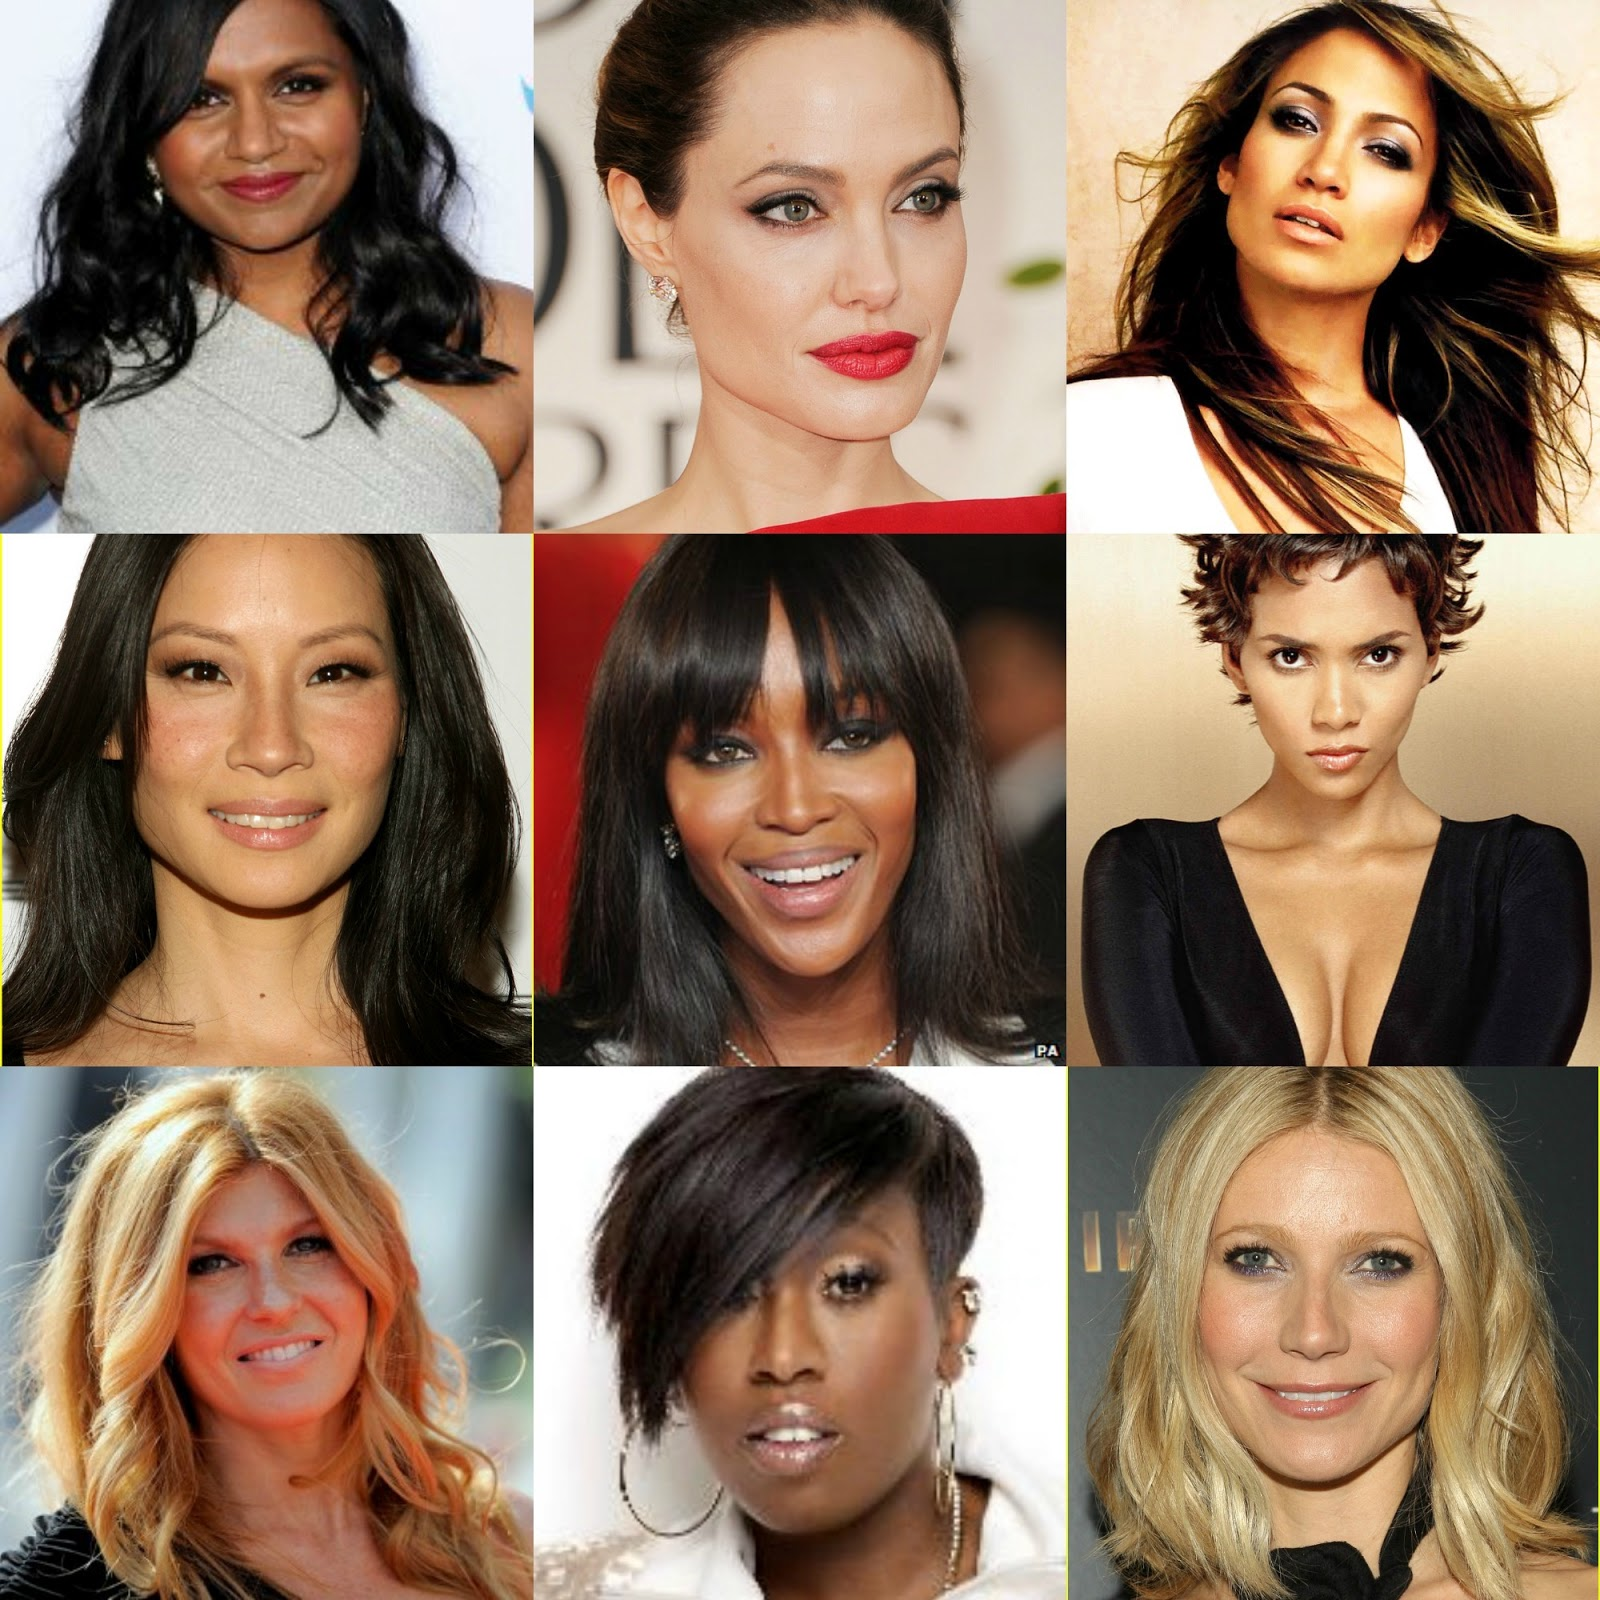 Mindy Kaling, Gwyneth Paltrow, Connie Britton, Naomi Campbell, Halle Berry, Angelina Jolie, Jennifer Lopez & Missy Elliot, Make-Up for different skin tones